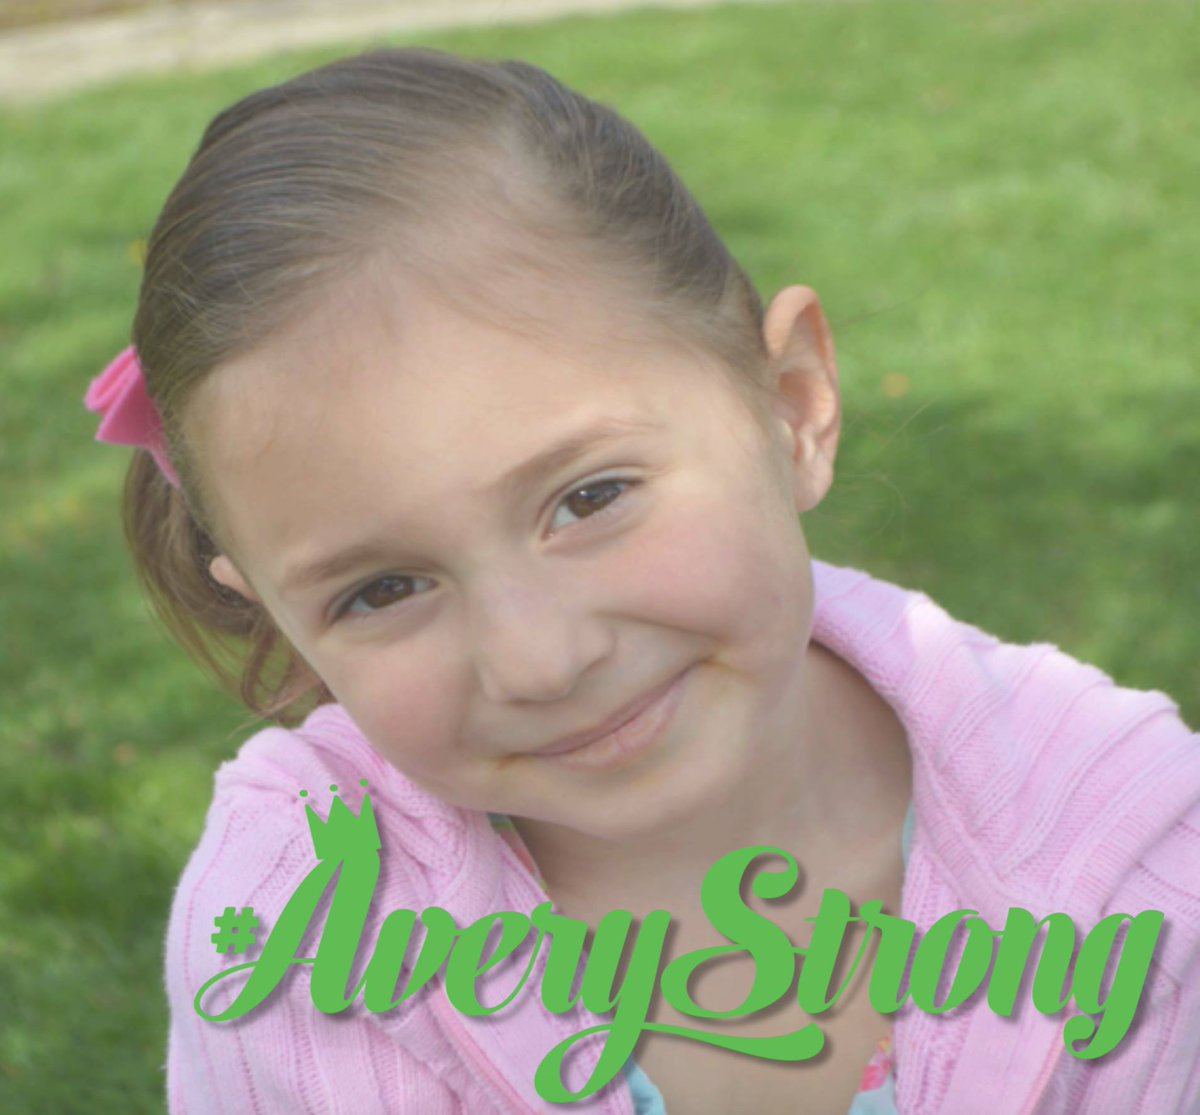 At 11:11 am, our beautiful daughter Avery went to heaven to be with the Lord. We will love her forever. #AveryStrong https://t.co/XHE5tC1PRF